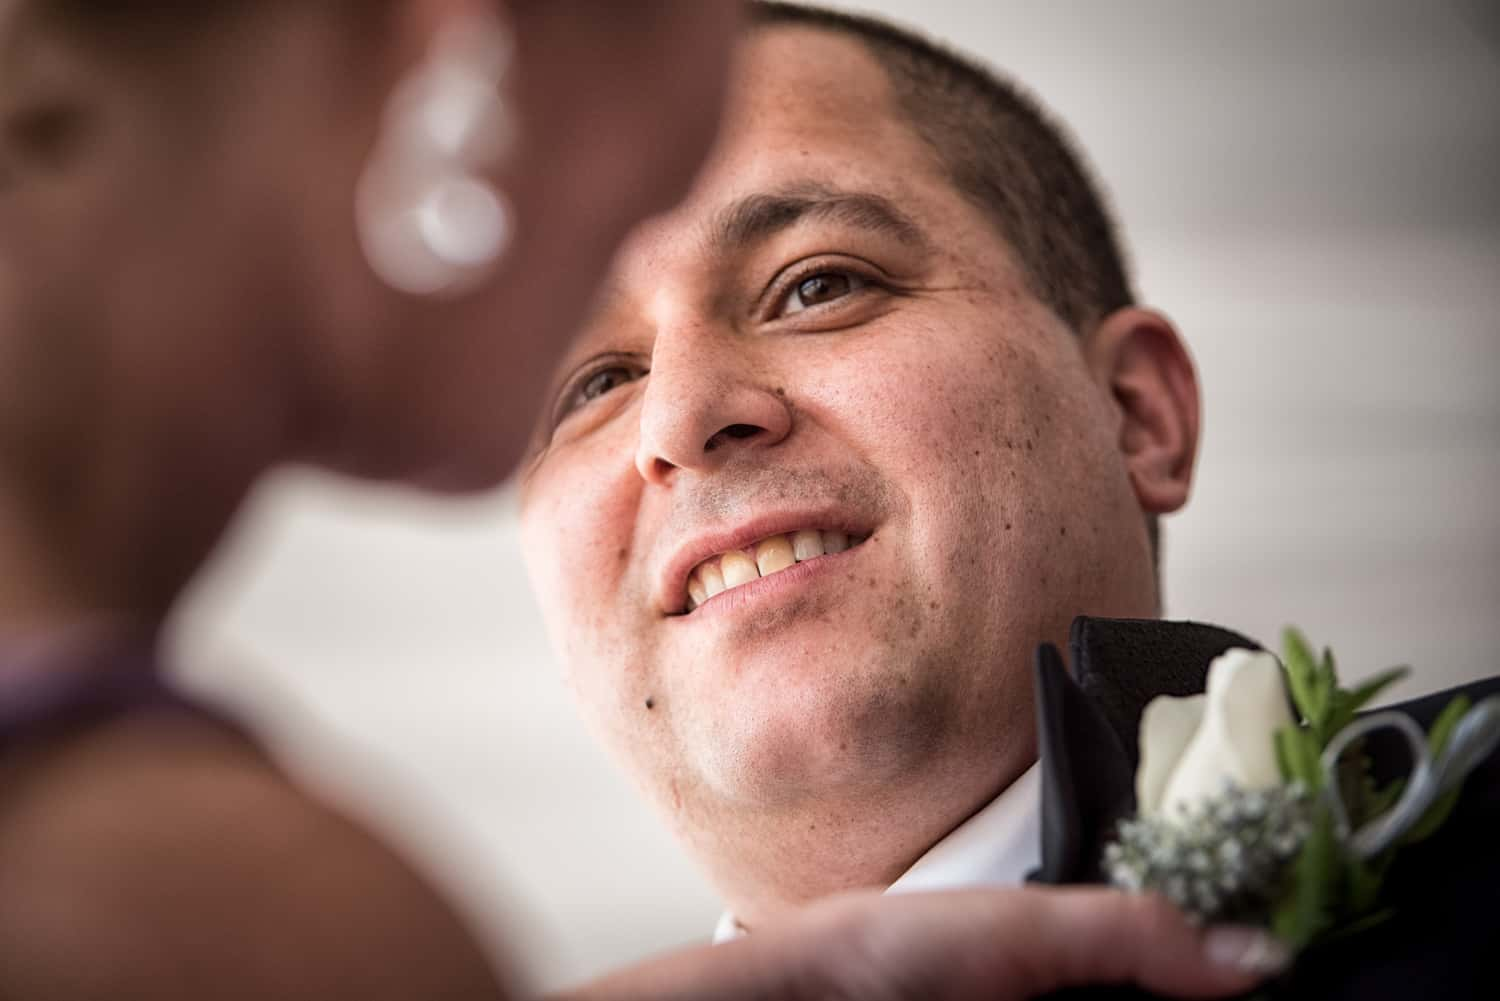 Grooms face smiling while someone pins a white flower to his purple vest.